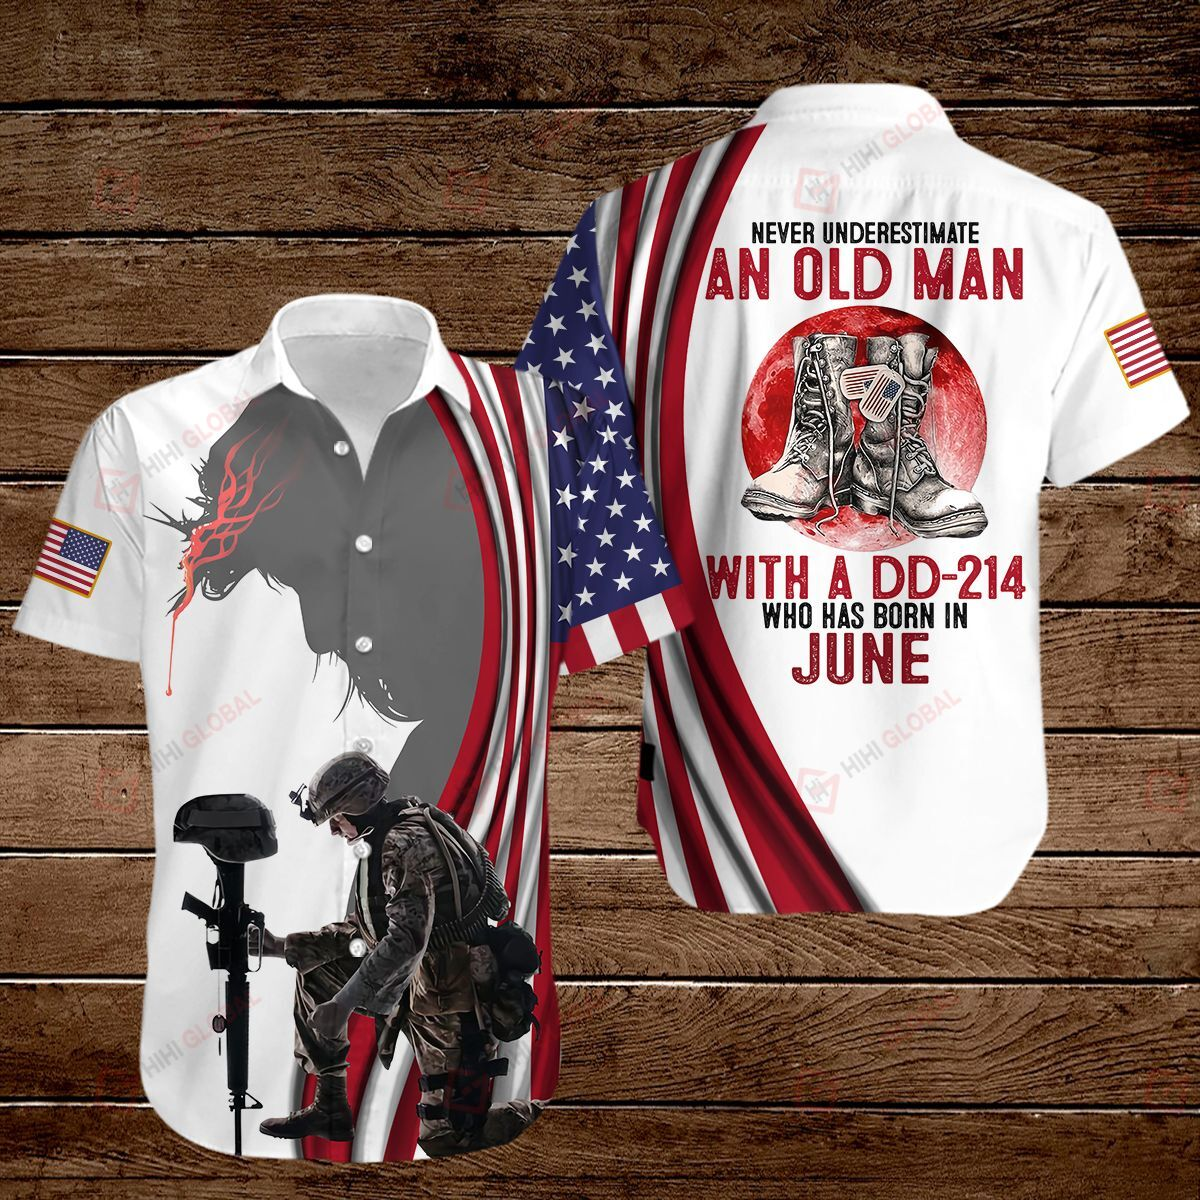 Personalized Birth Month Never underestimate an old man with a DD-214 All Over Printed 3D Shirt